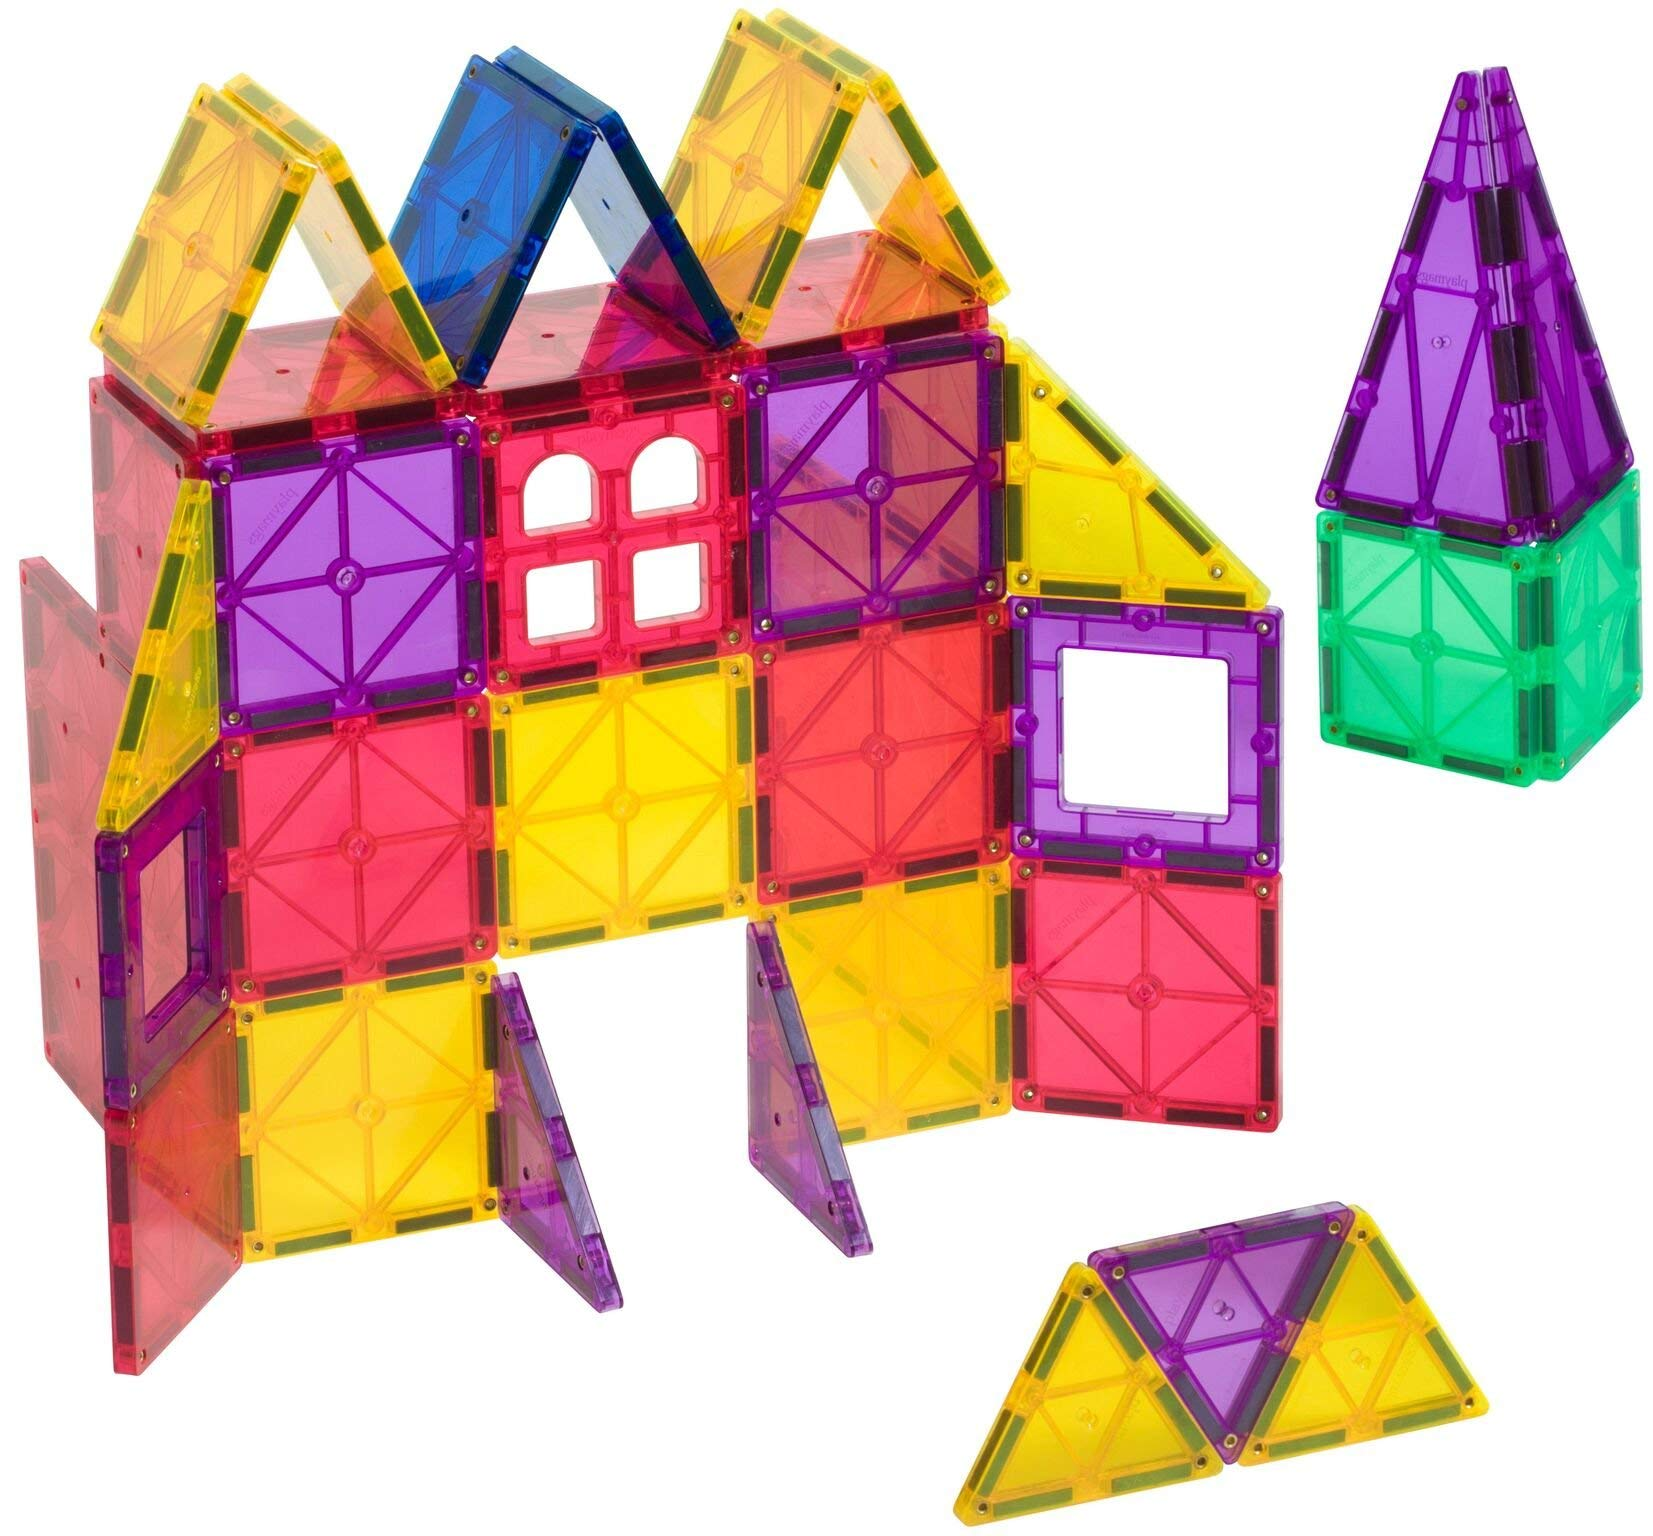 Playmags Clear Colors Magnetic Tiles Building Set 60 Piece Starter Set by Playmags (Image #3)